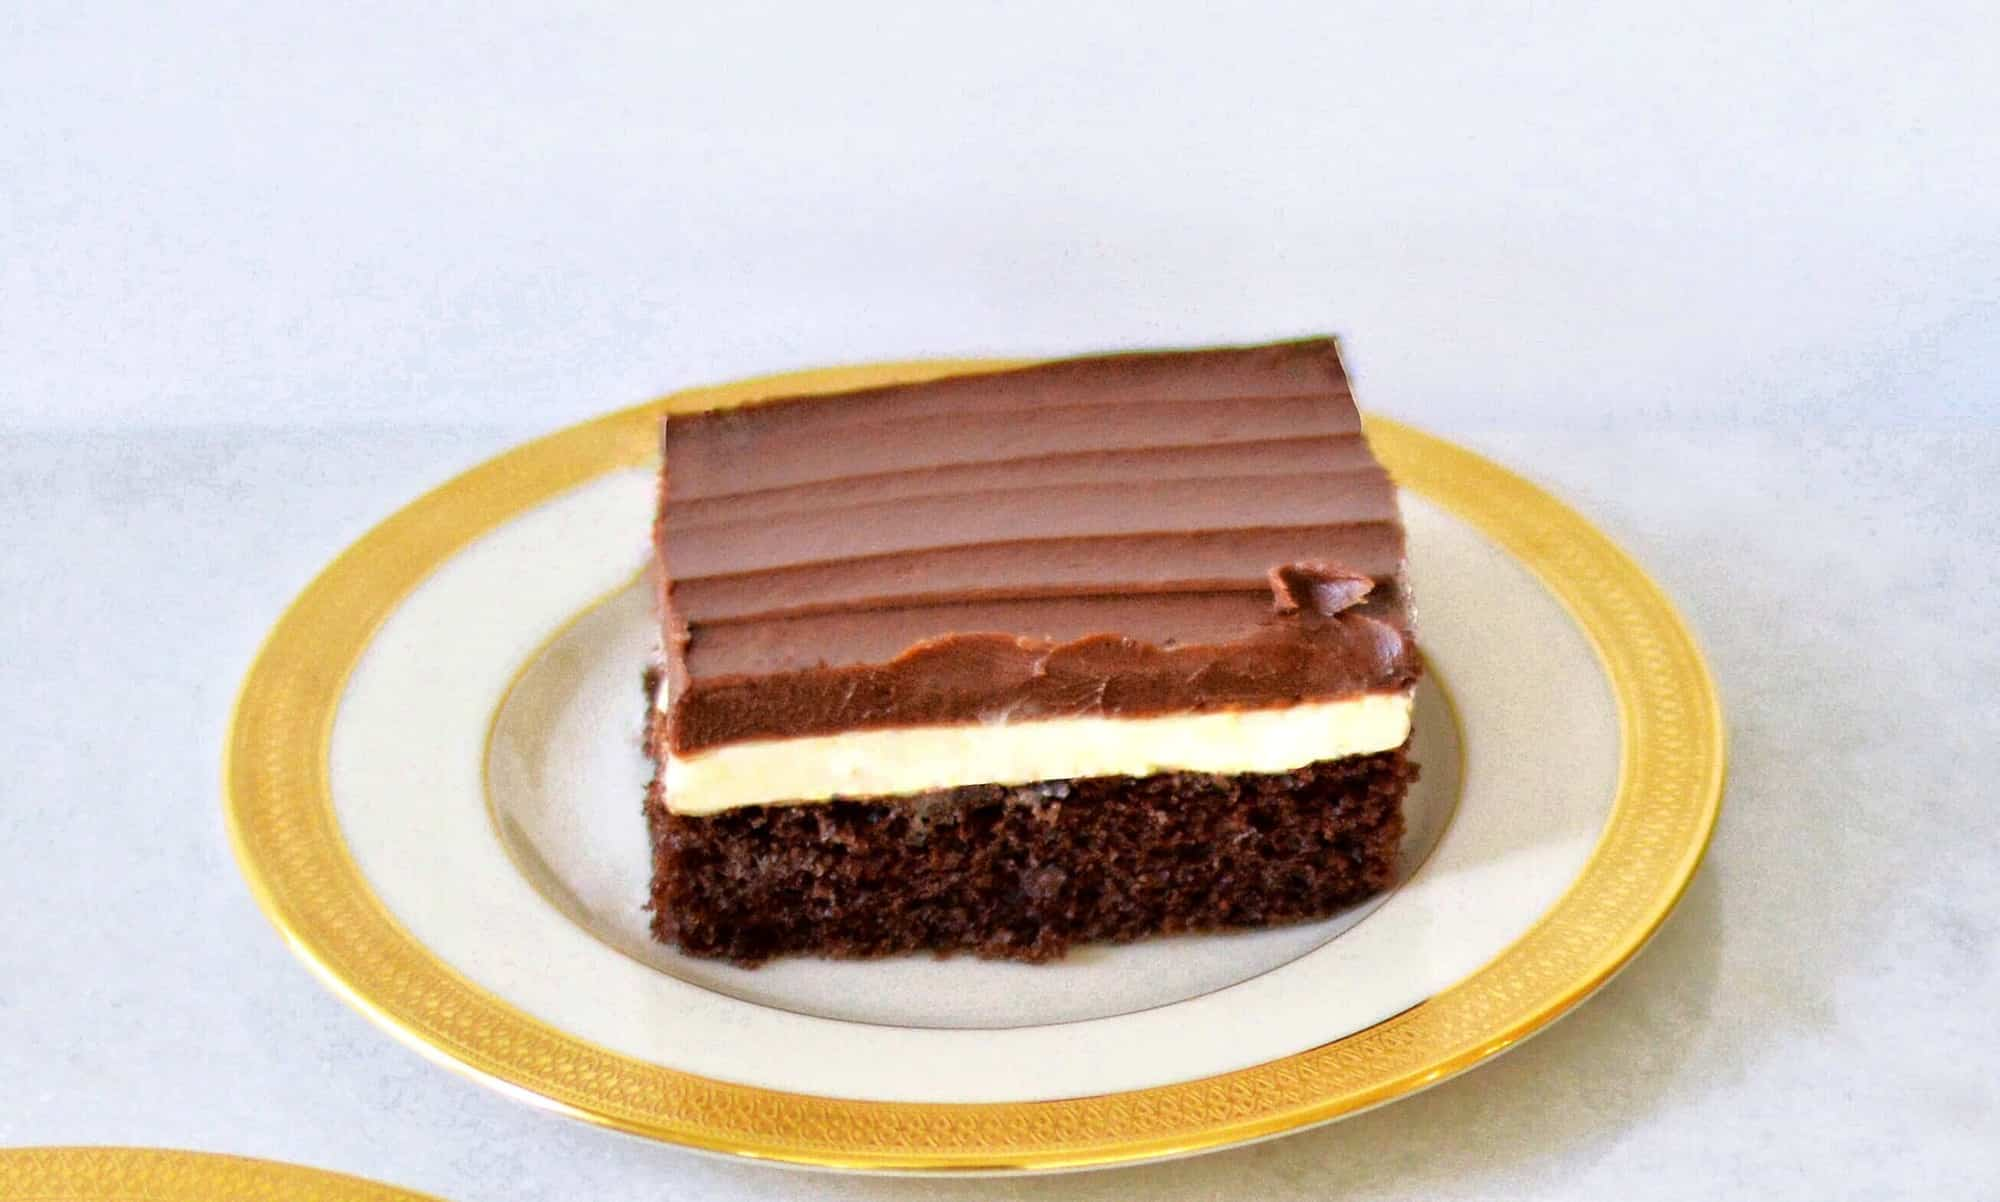 slice of Ho Ho cake: chocolate cake with layer of cream and ganache